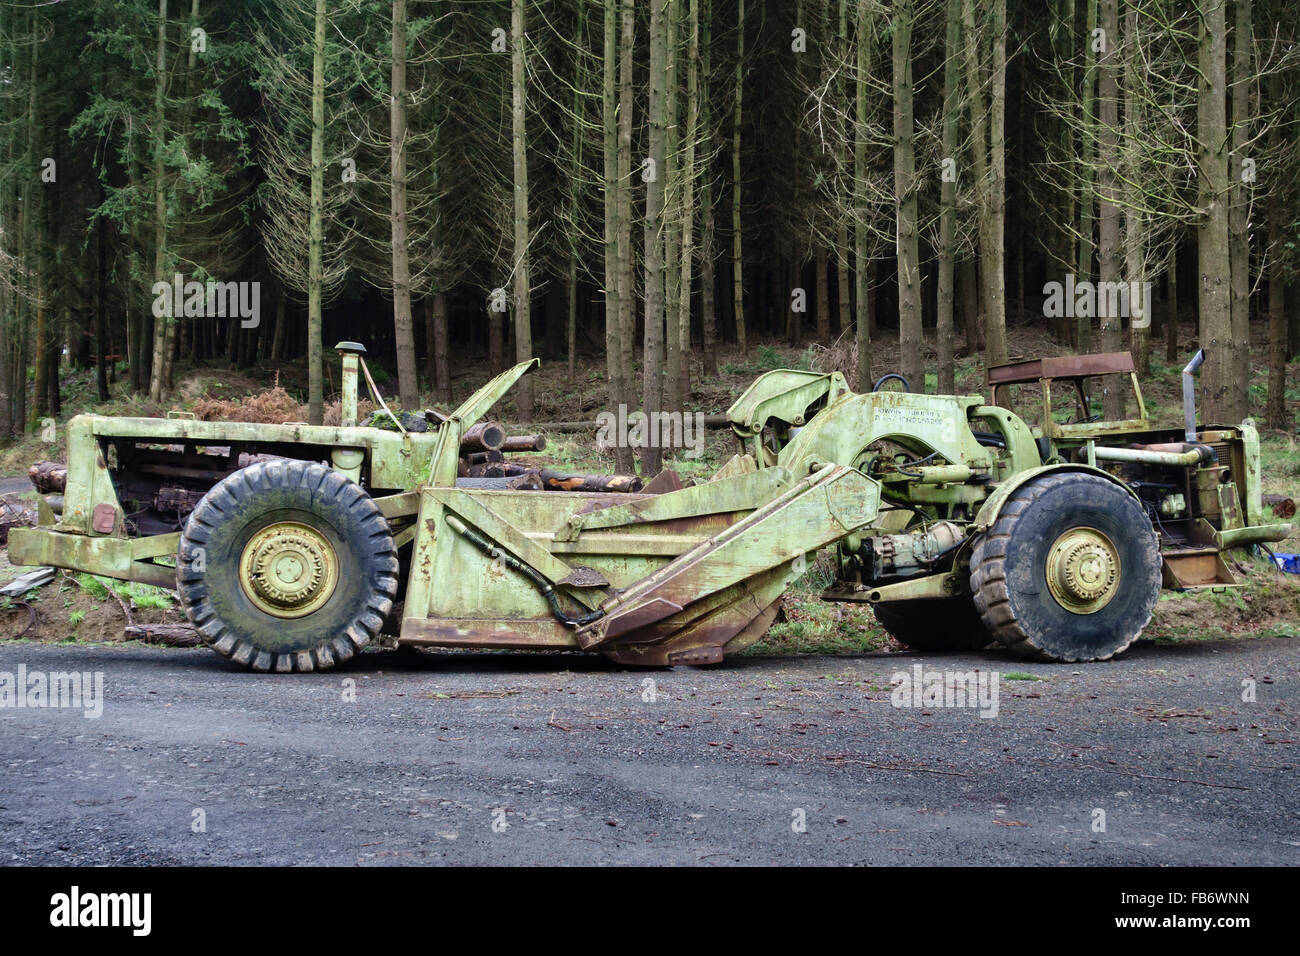 Herefordshire, UK. An old Terex TS-14b grader or scraper making new access tracks in a forestry plantation - Stock Image